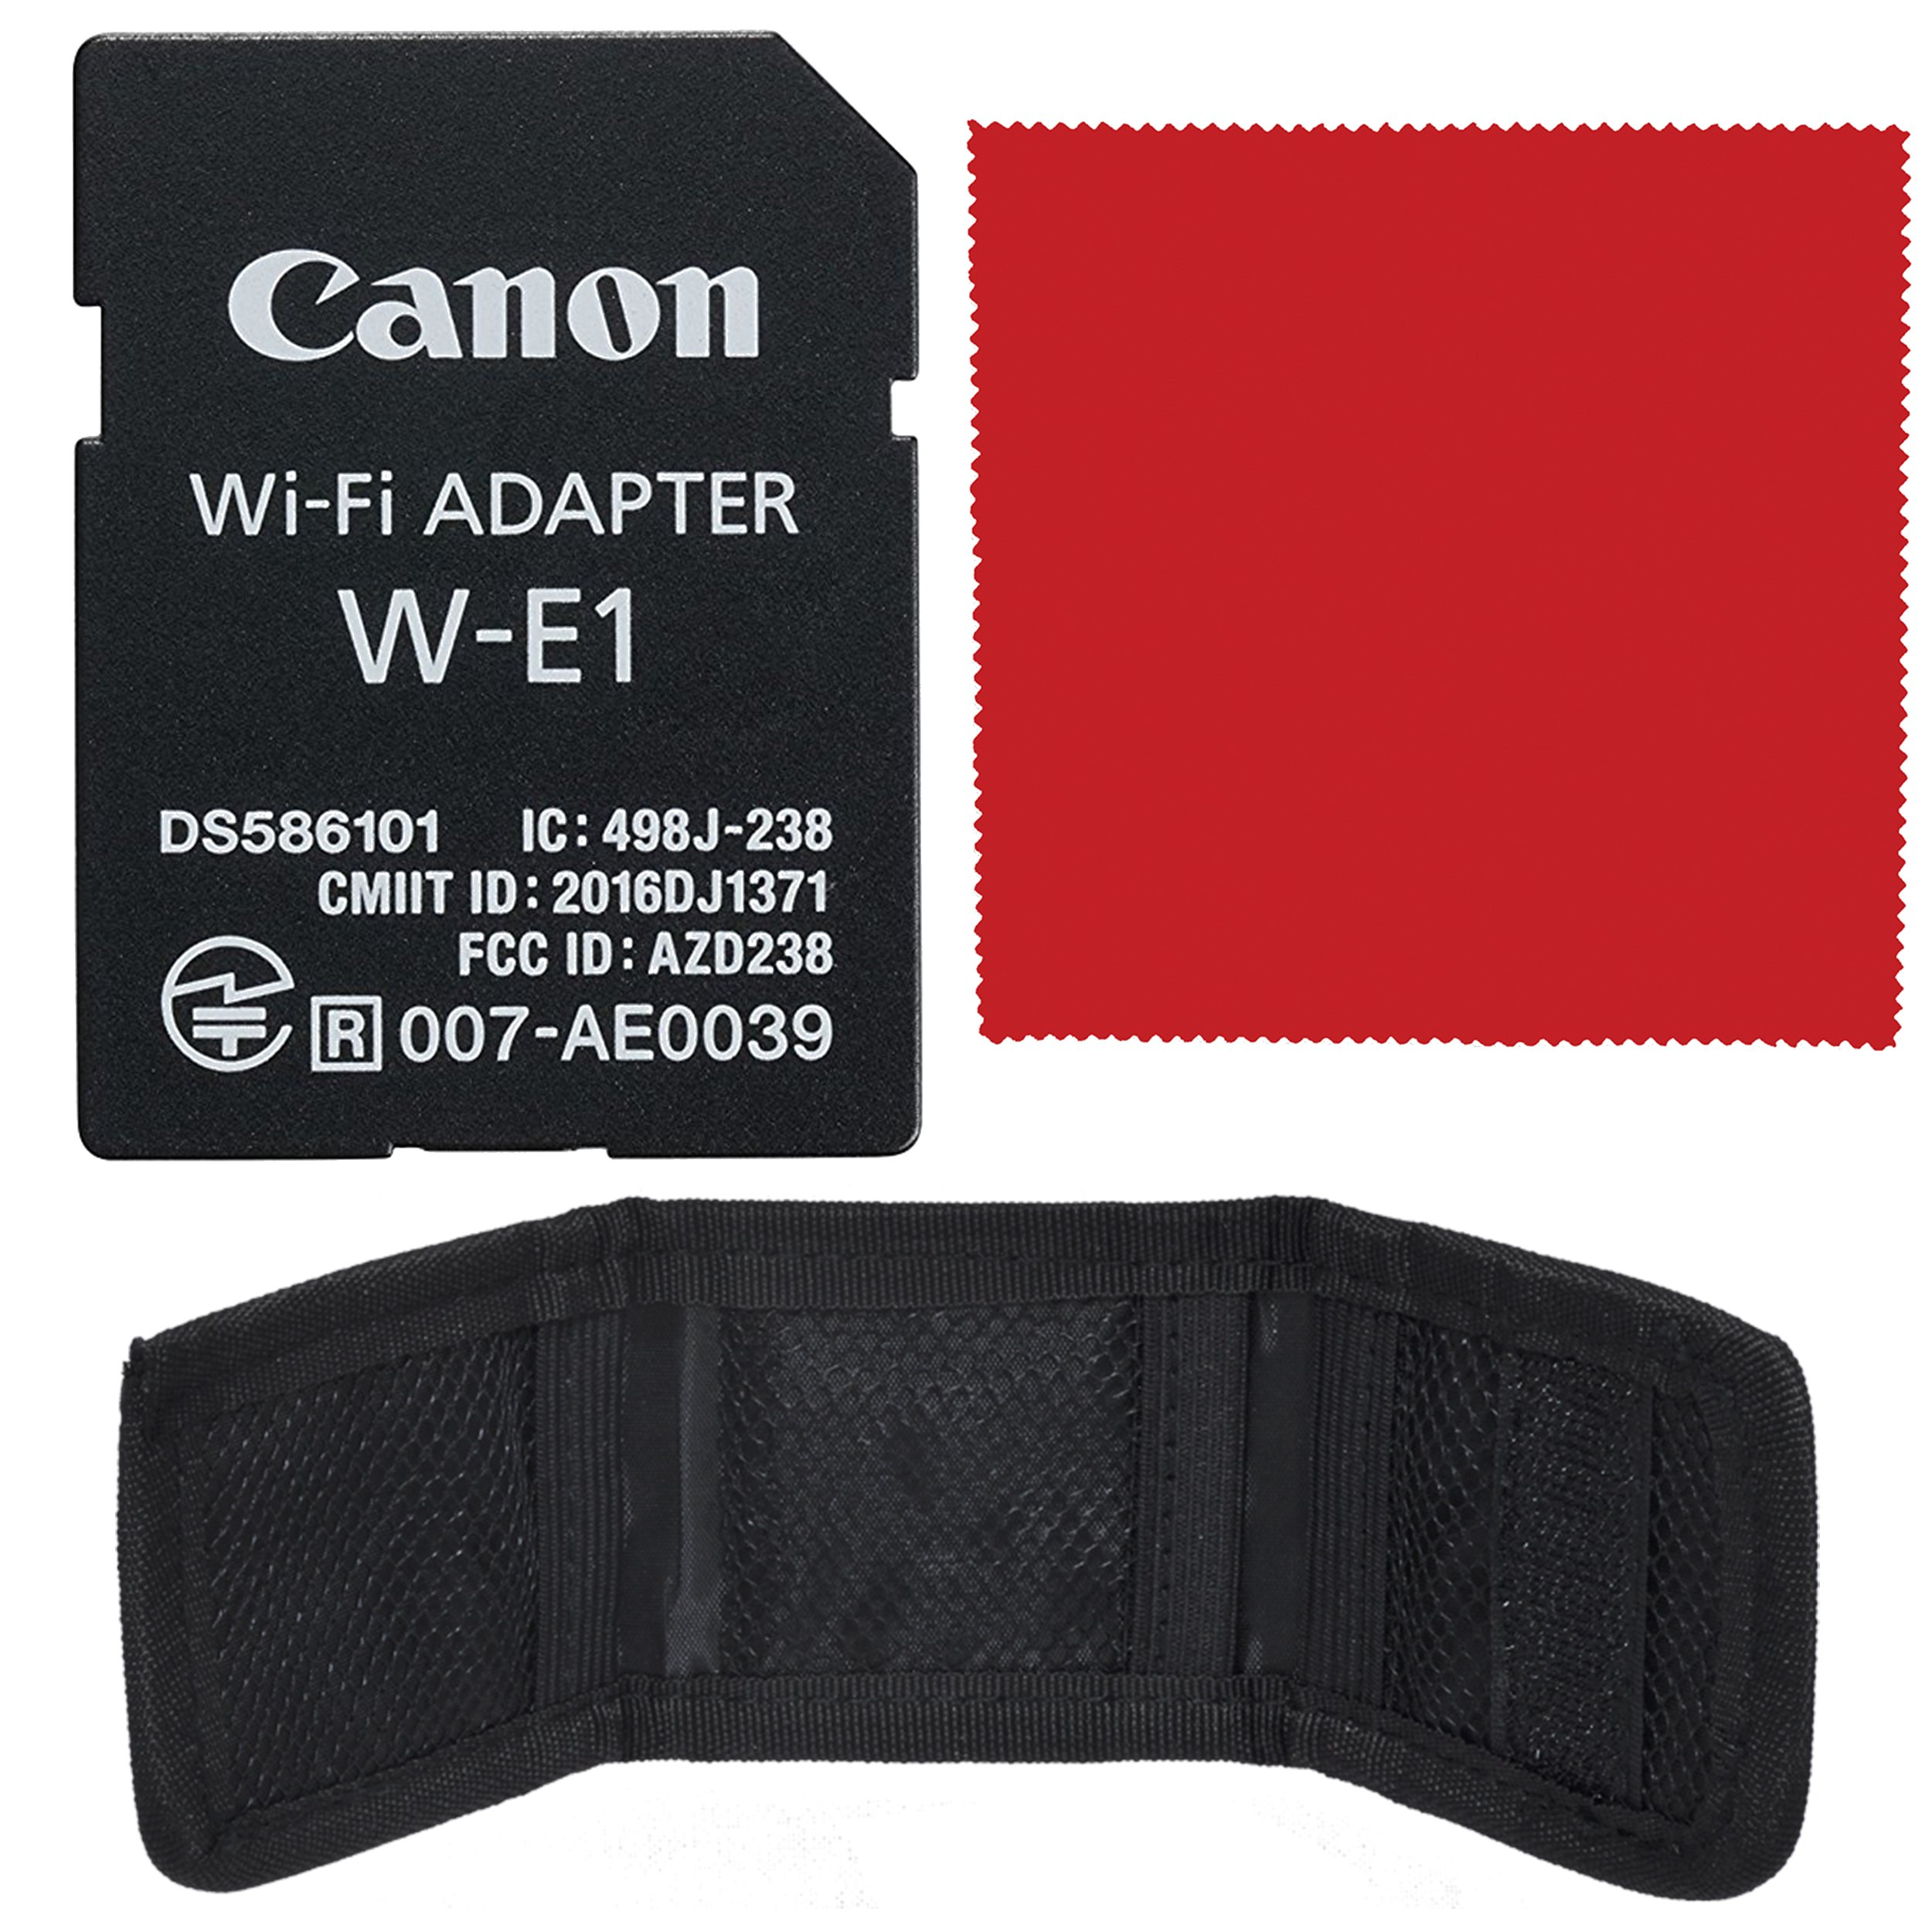 Canon Wi-Fi Adapter W-E1 (1716C001) Bundle with SD and CF Storage Wallet Pouch + Ultrasoft Microfiber Cleaning Cloth!